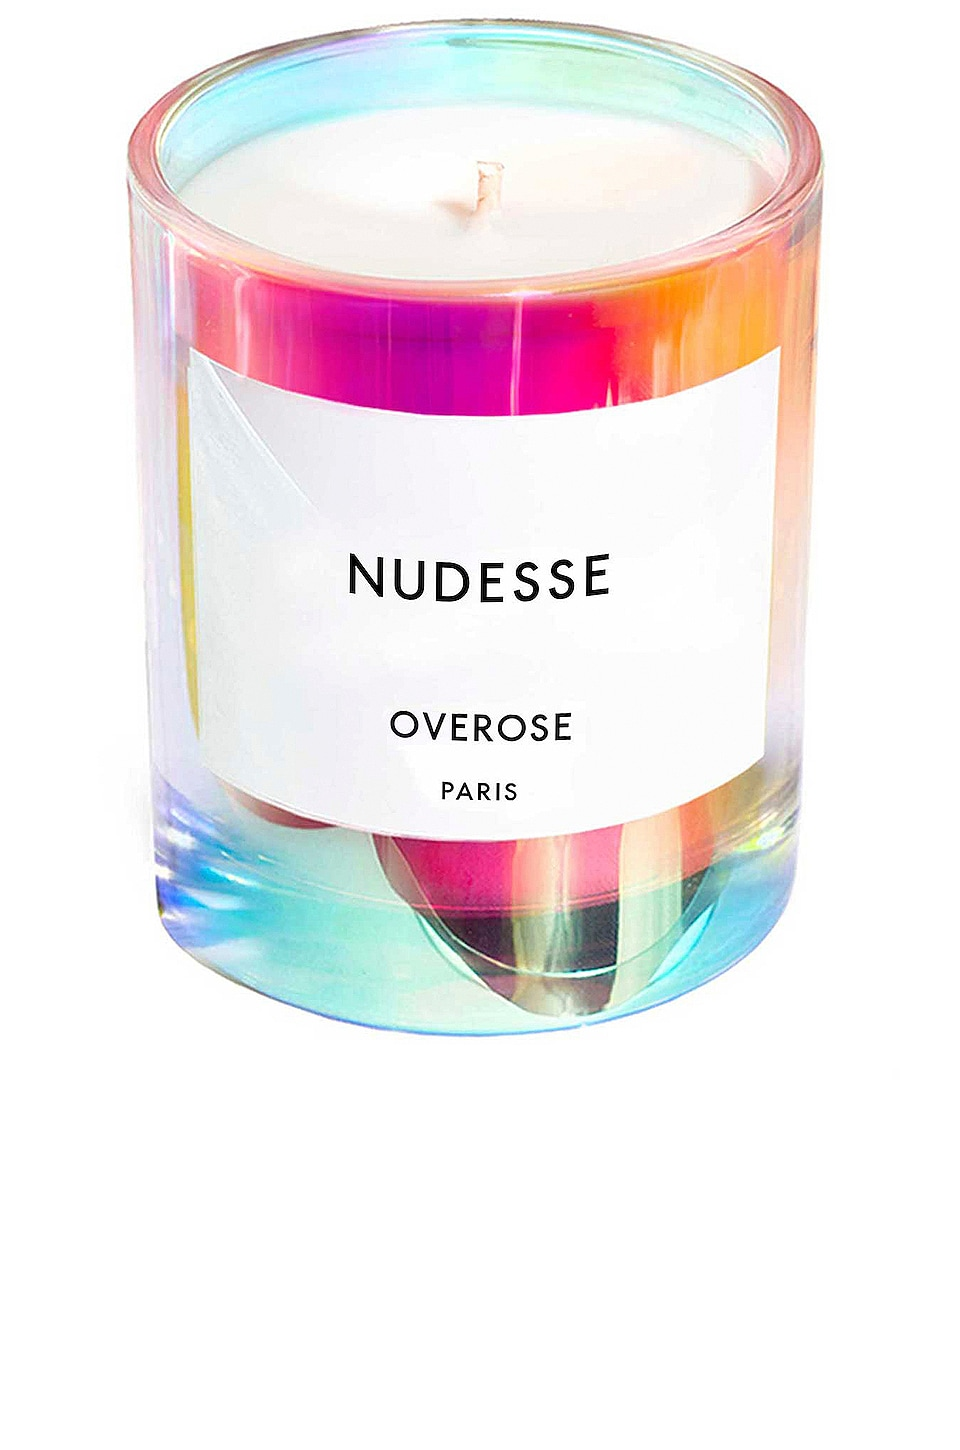 OVEROSE Nudesse in Holographic